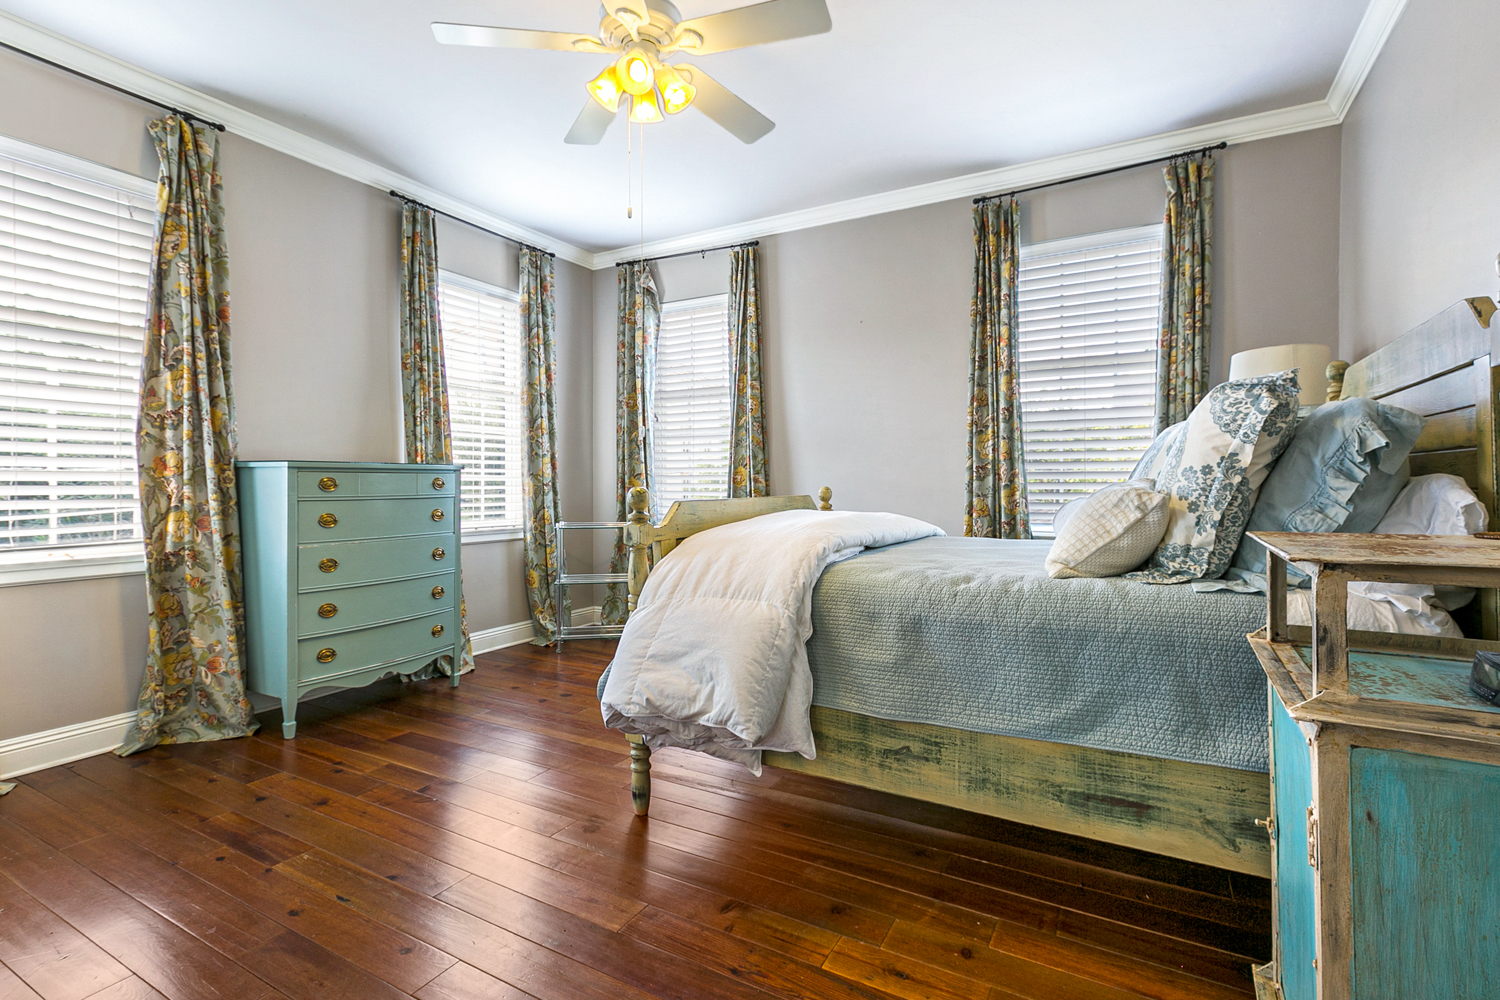 Garden District, Apartment, 2 beds, 1.0 baths, $3000 per month New Orleans Rental - devie image_11